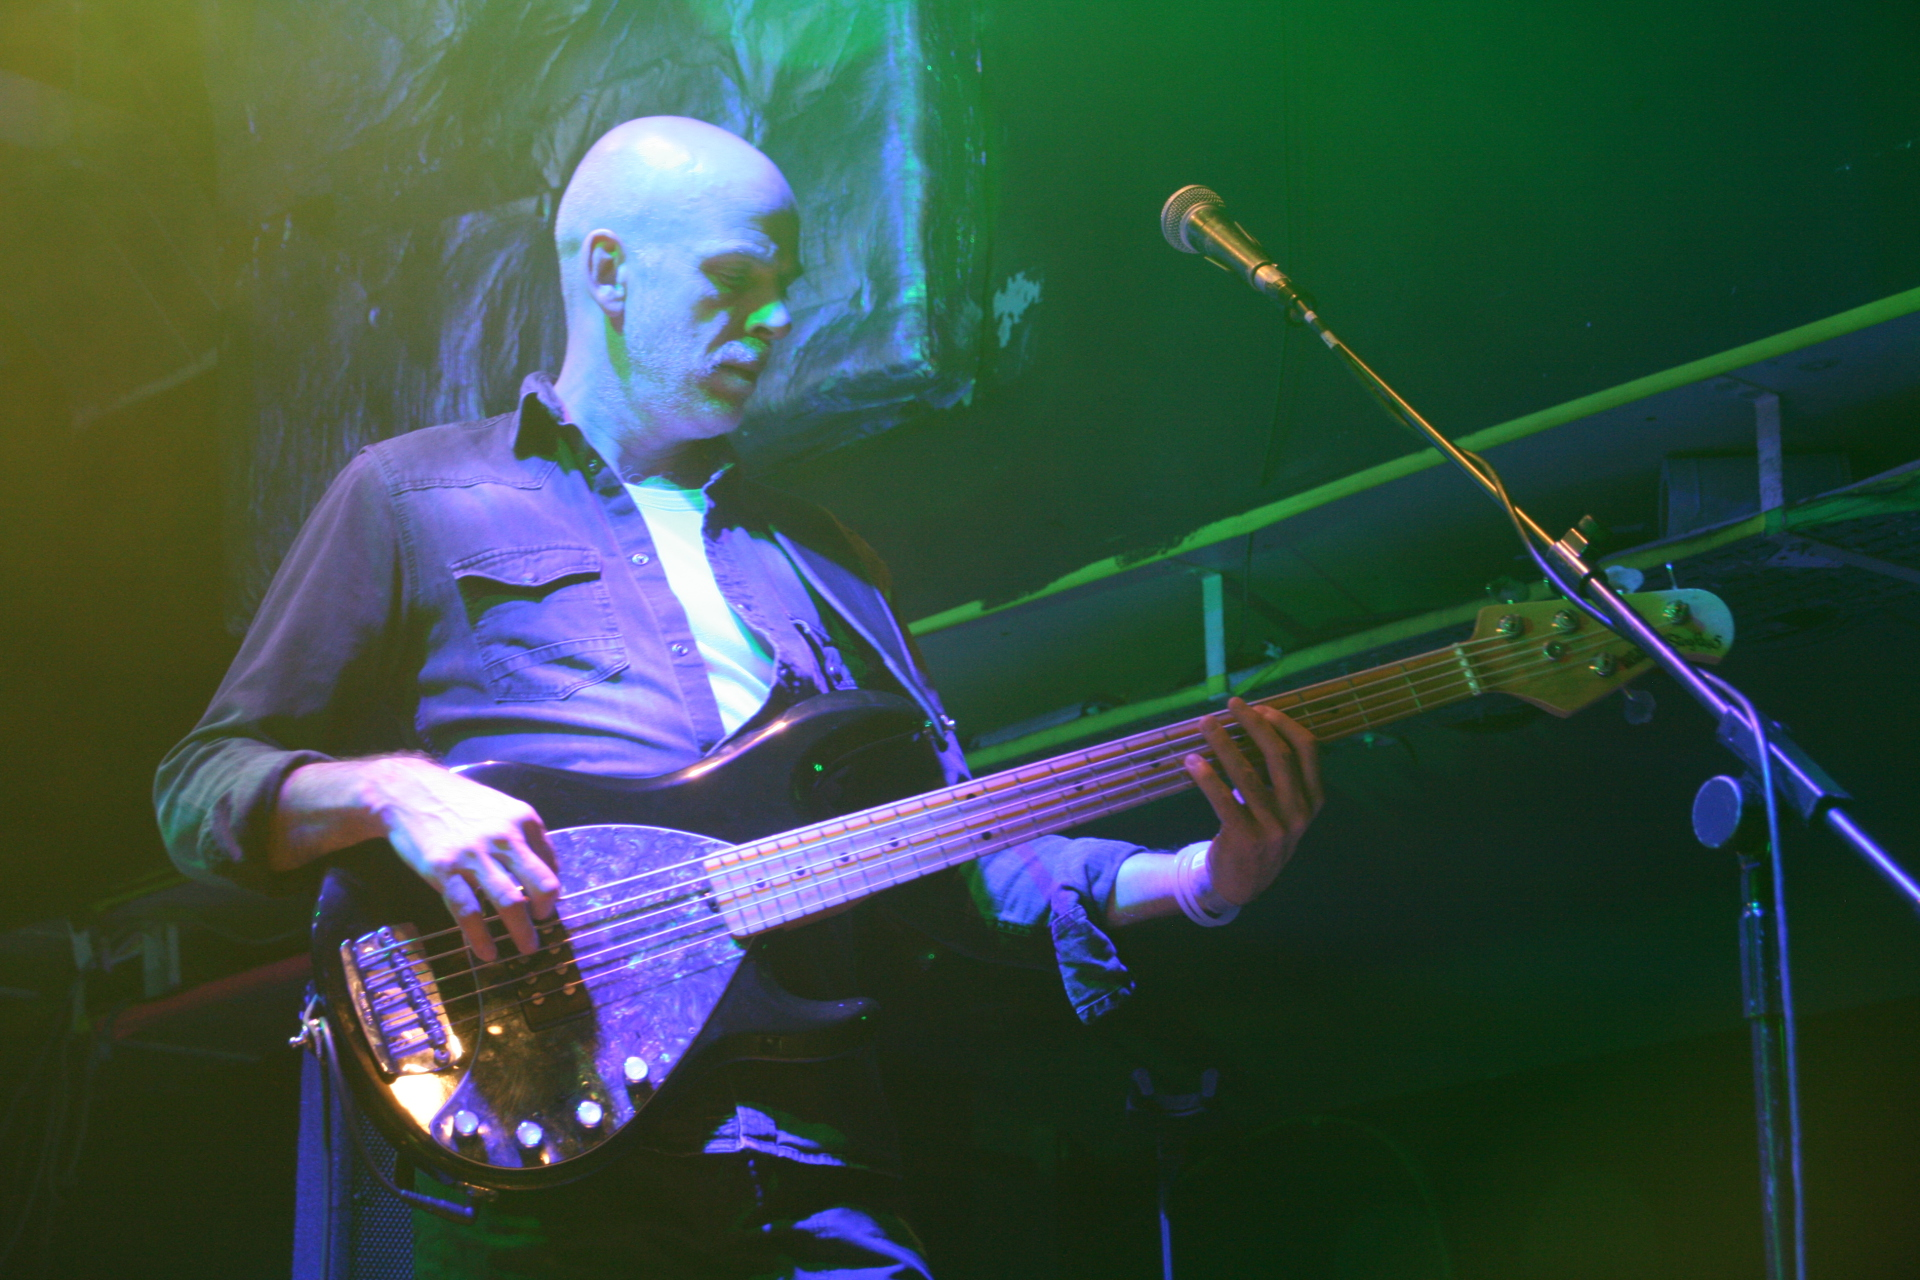 Tim Esau IQ Bass 02 Islington